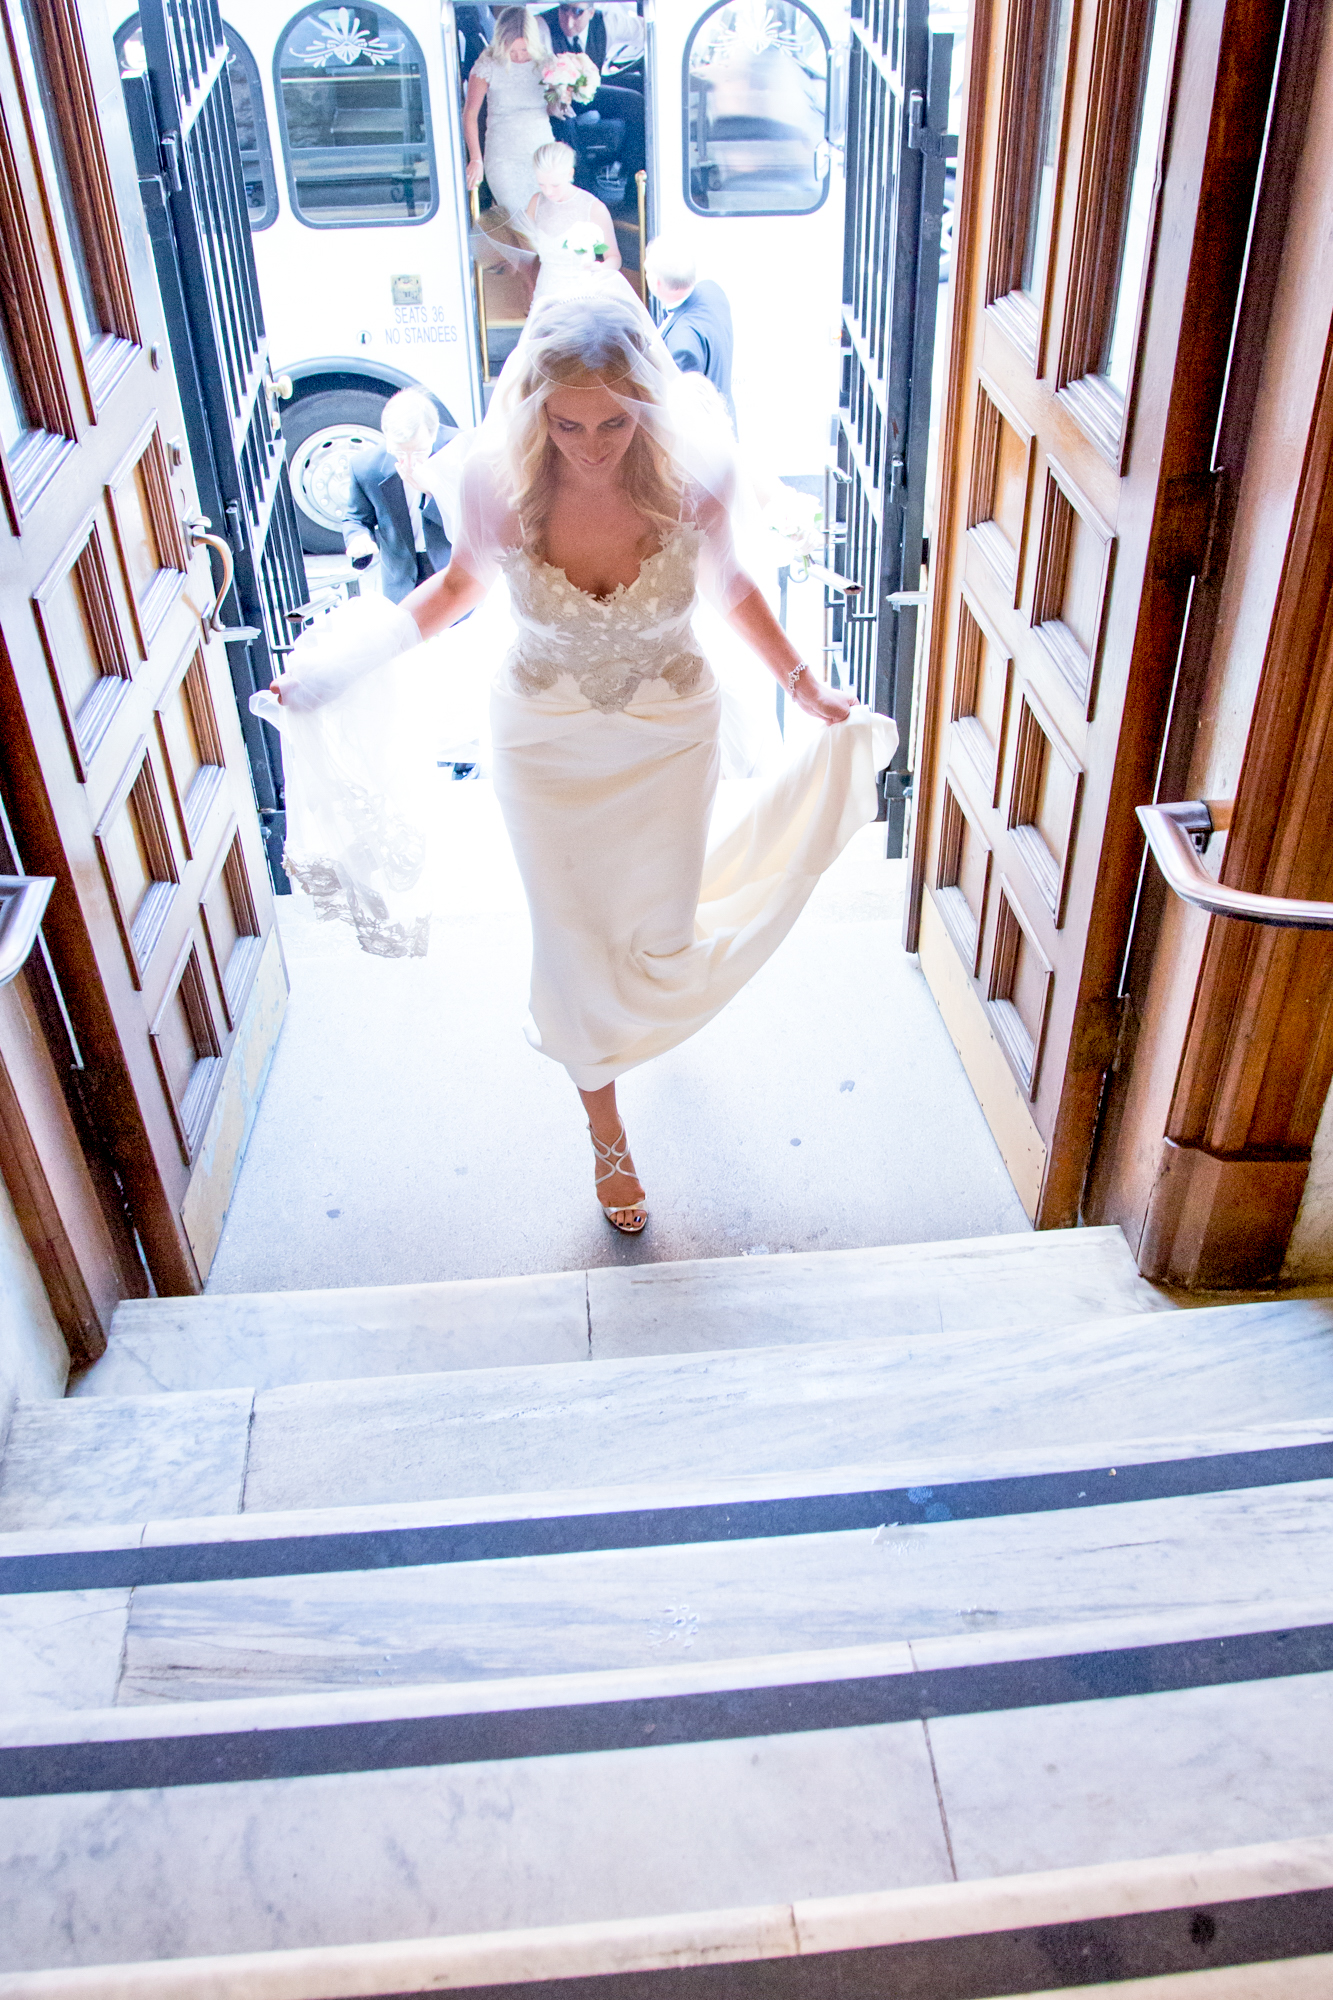 103_CarlyGaebe_SteadfastStudio_WeddingPhotography_Readyluck_NewYorkCity_Manhattan_Soho_ChurchOfSaintAnthony_Bride_Dress_Veil.jpg